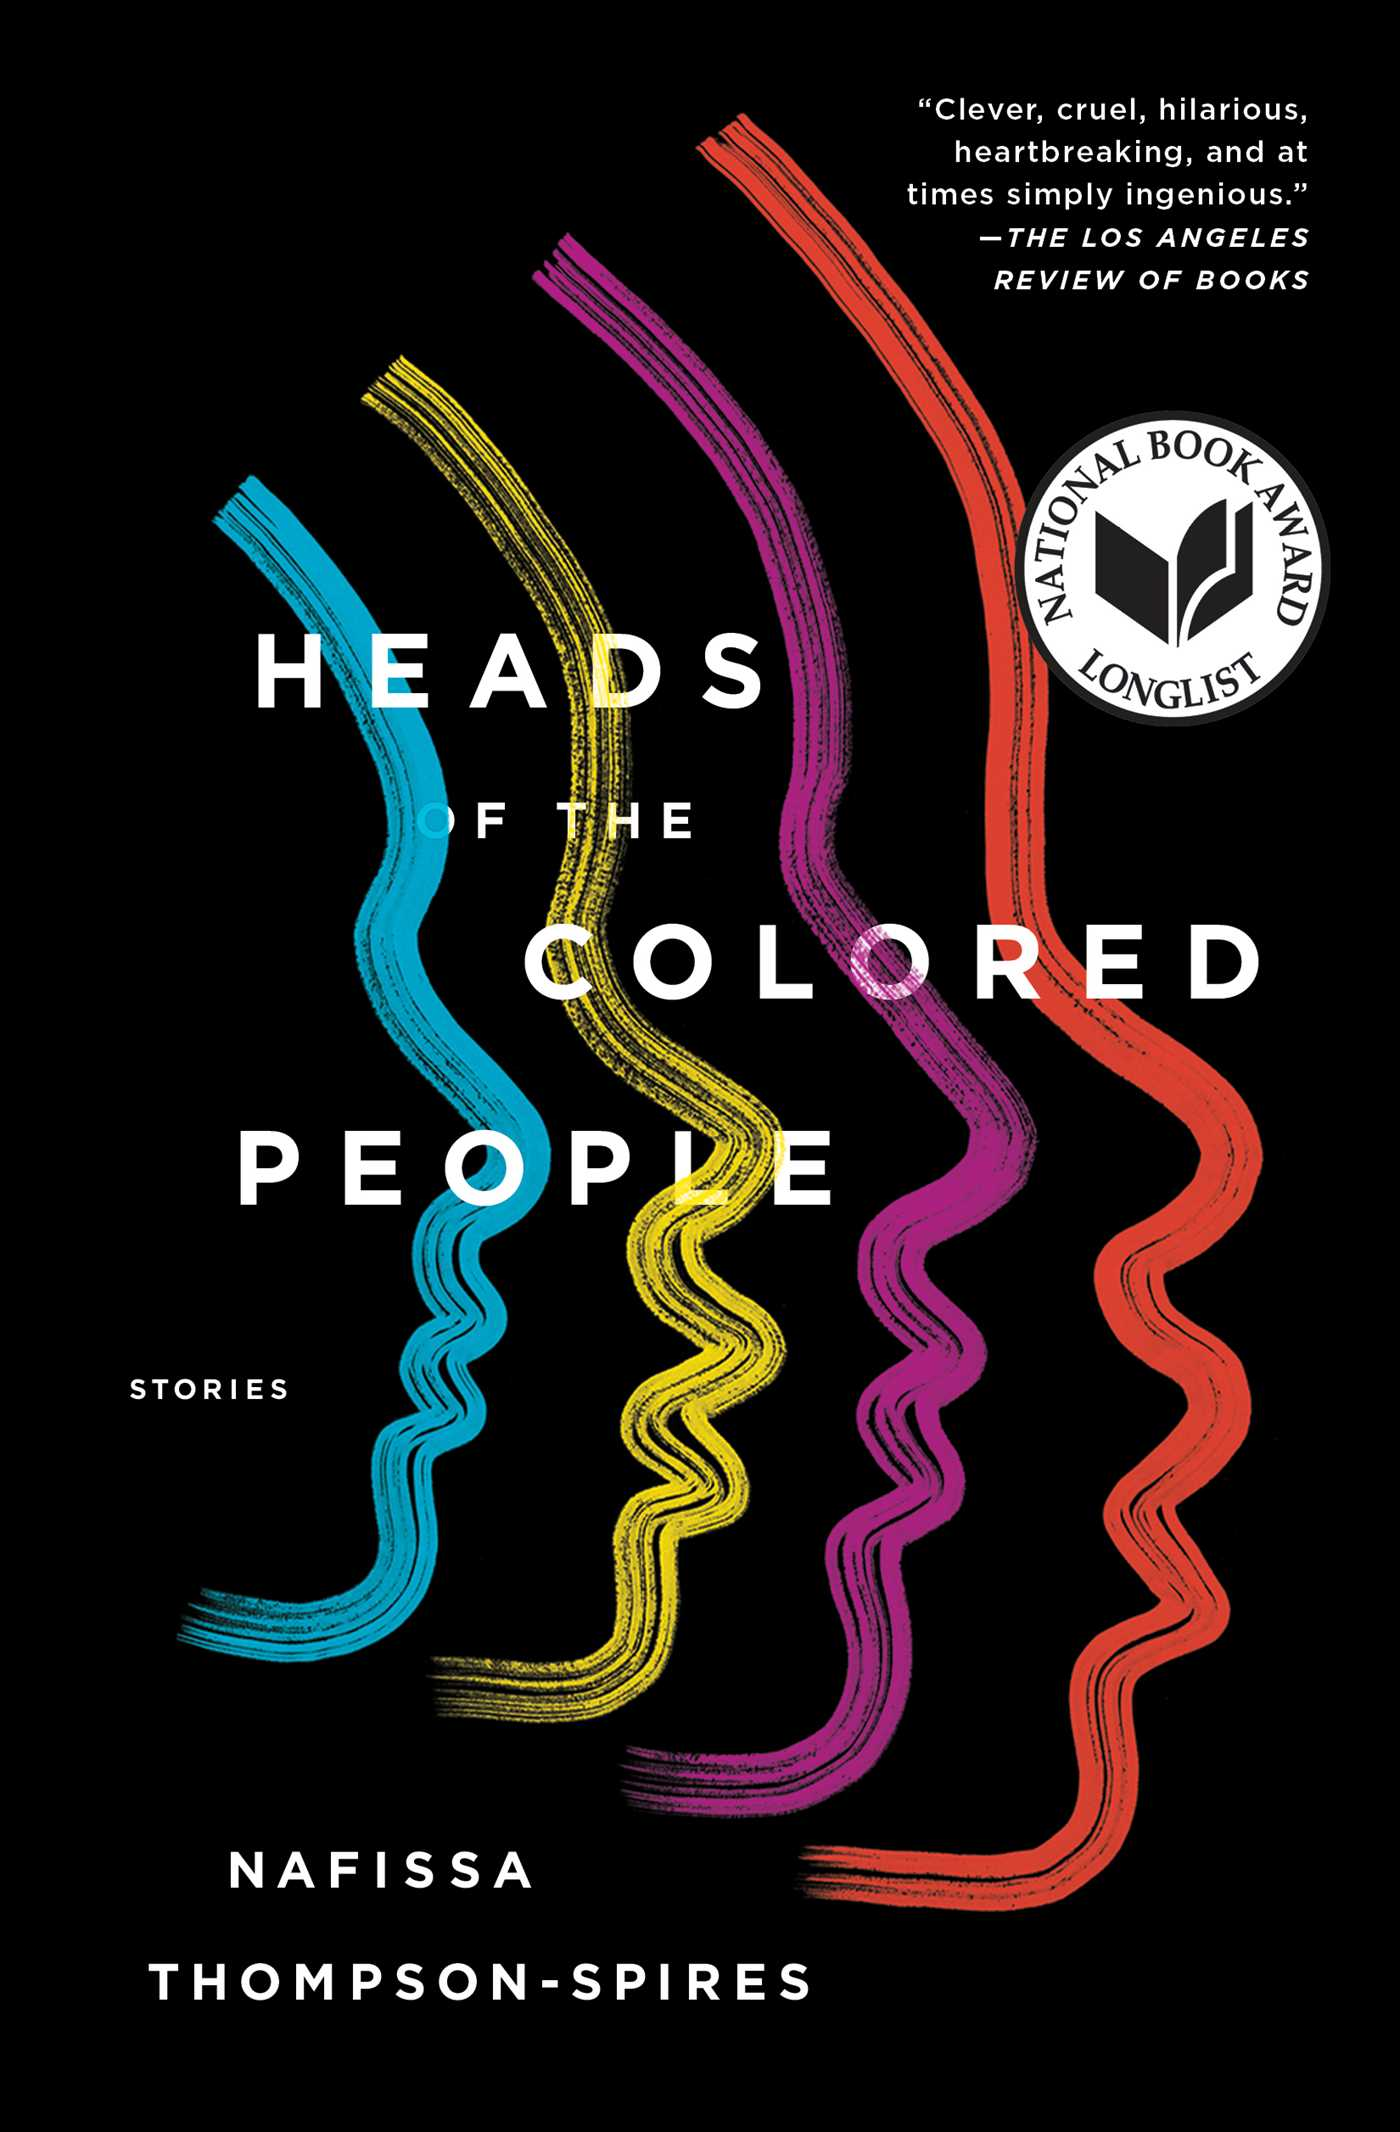 Heads of the colored people 9781501168017 hr